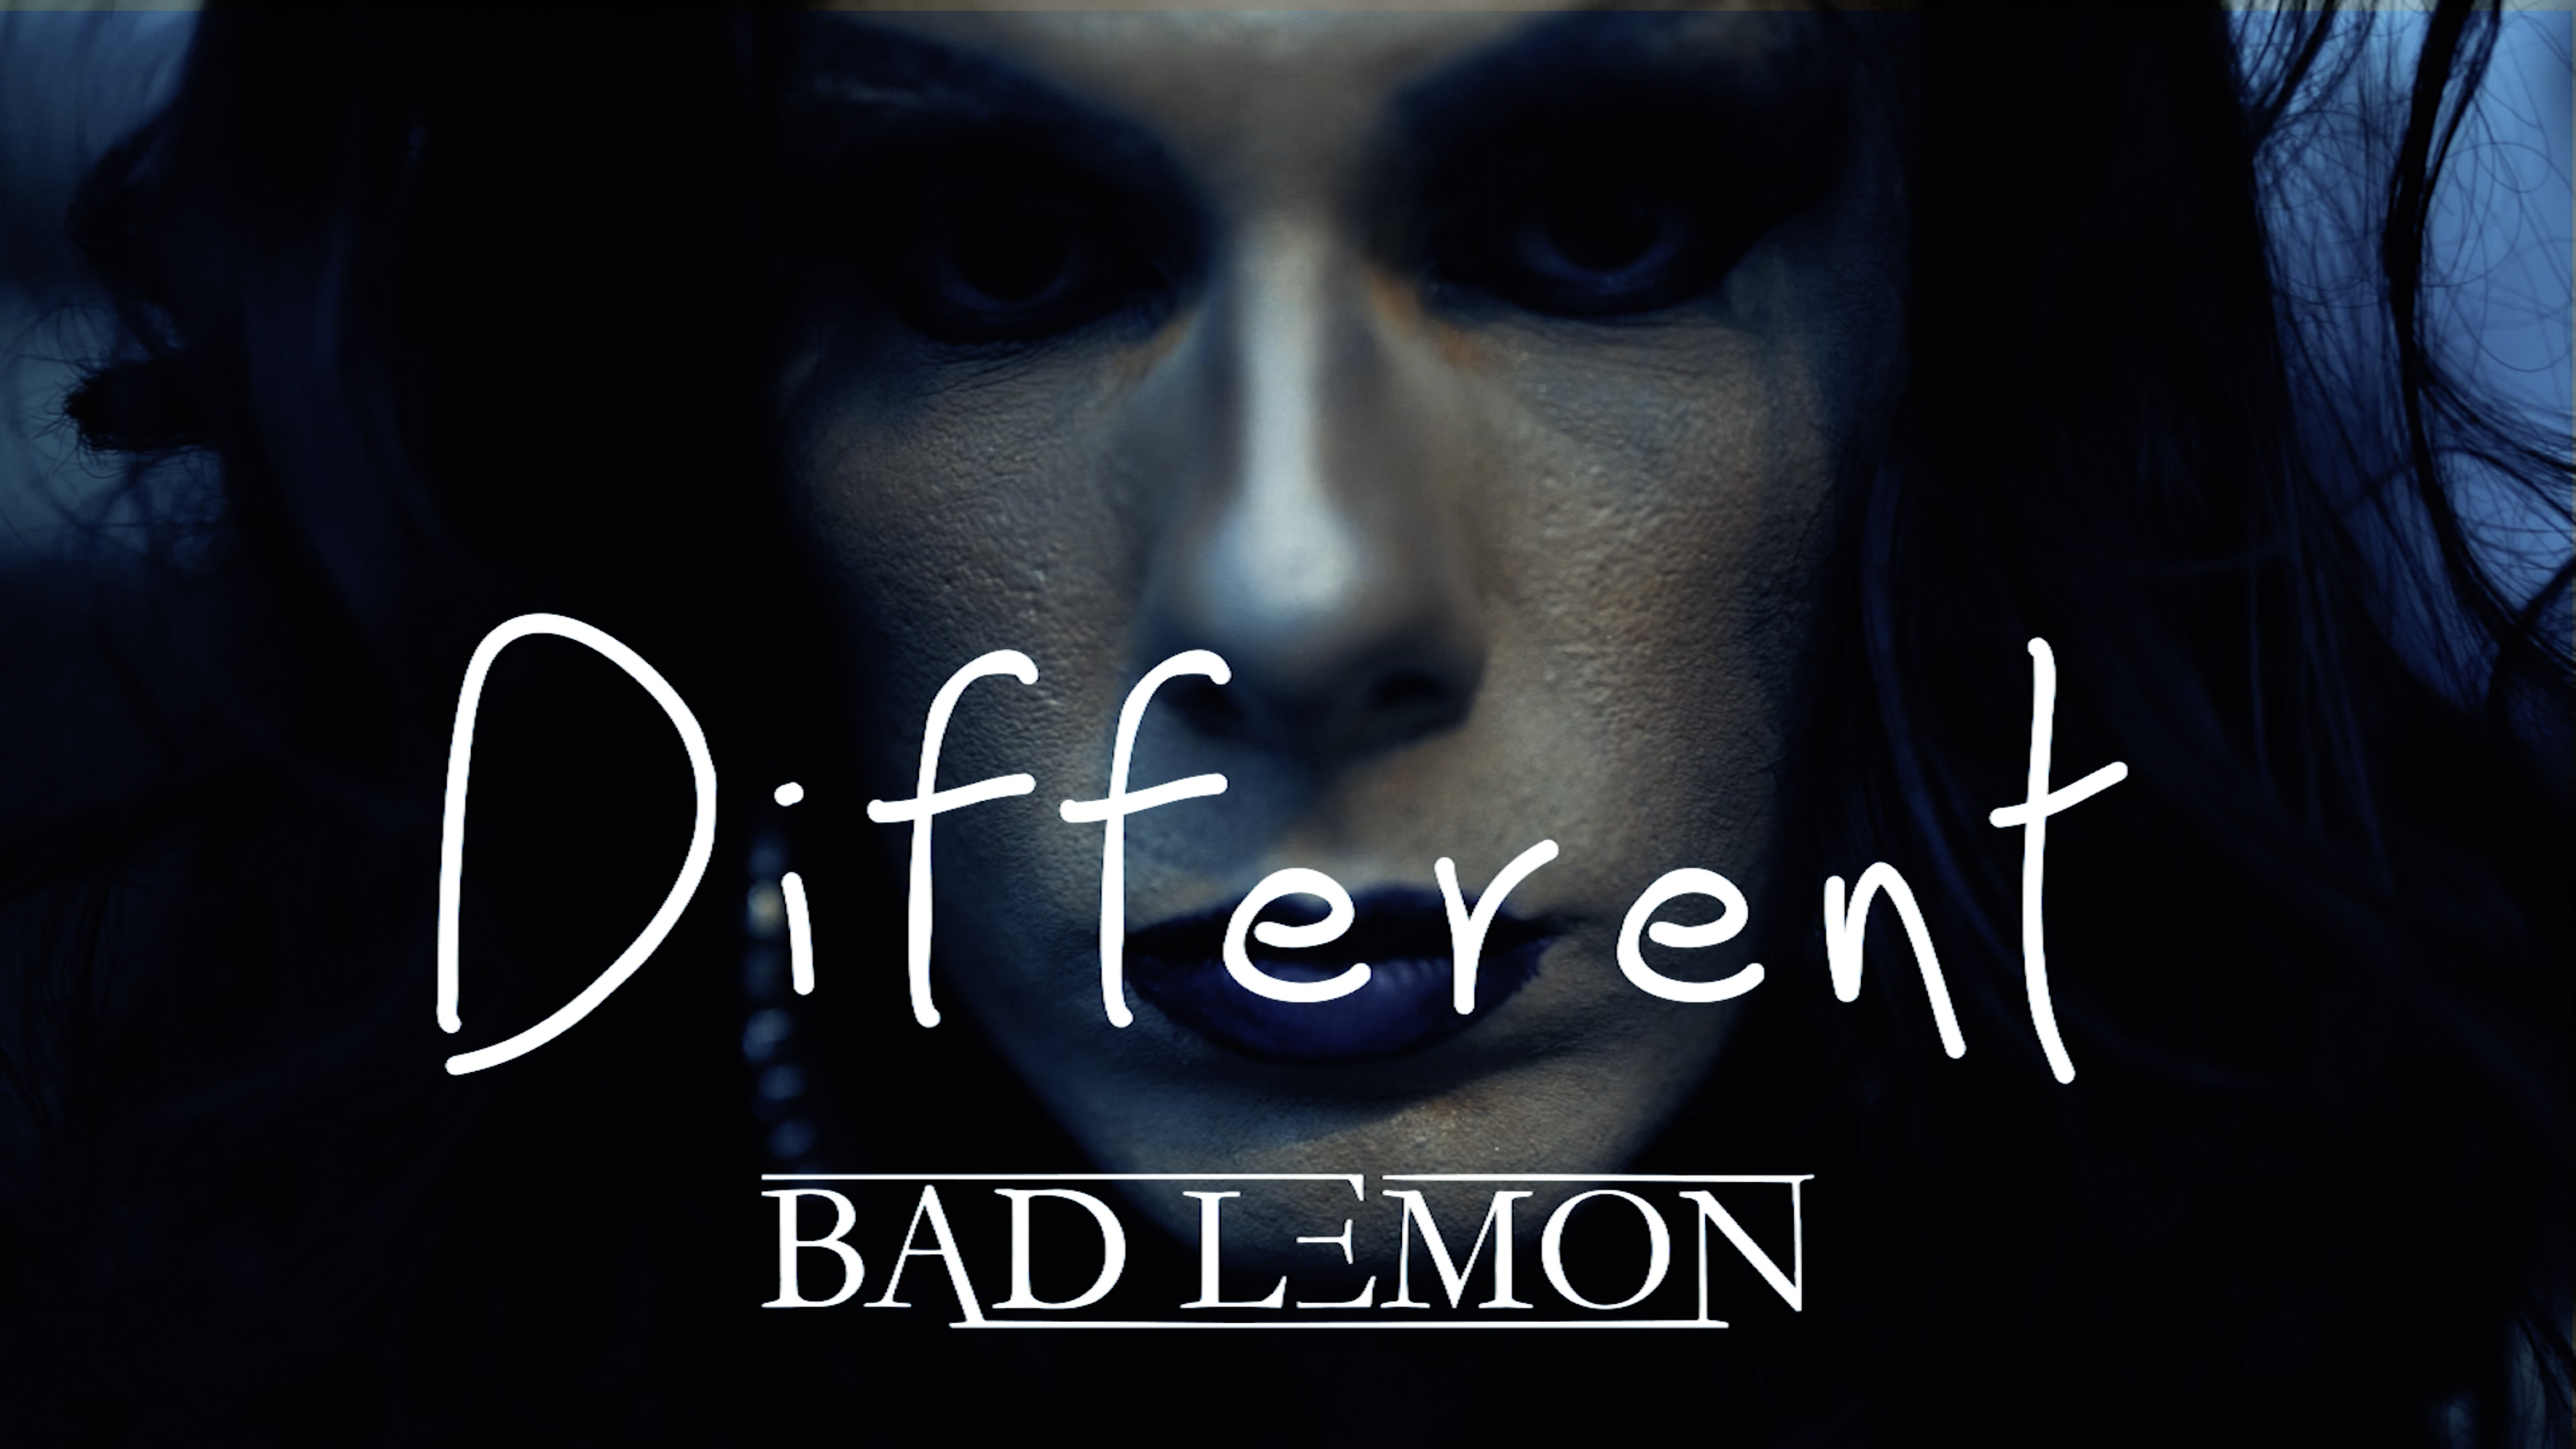 Re-inventing Pop Music with A Refreshing Debut: Bad Lemon Release Inspiring New Single